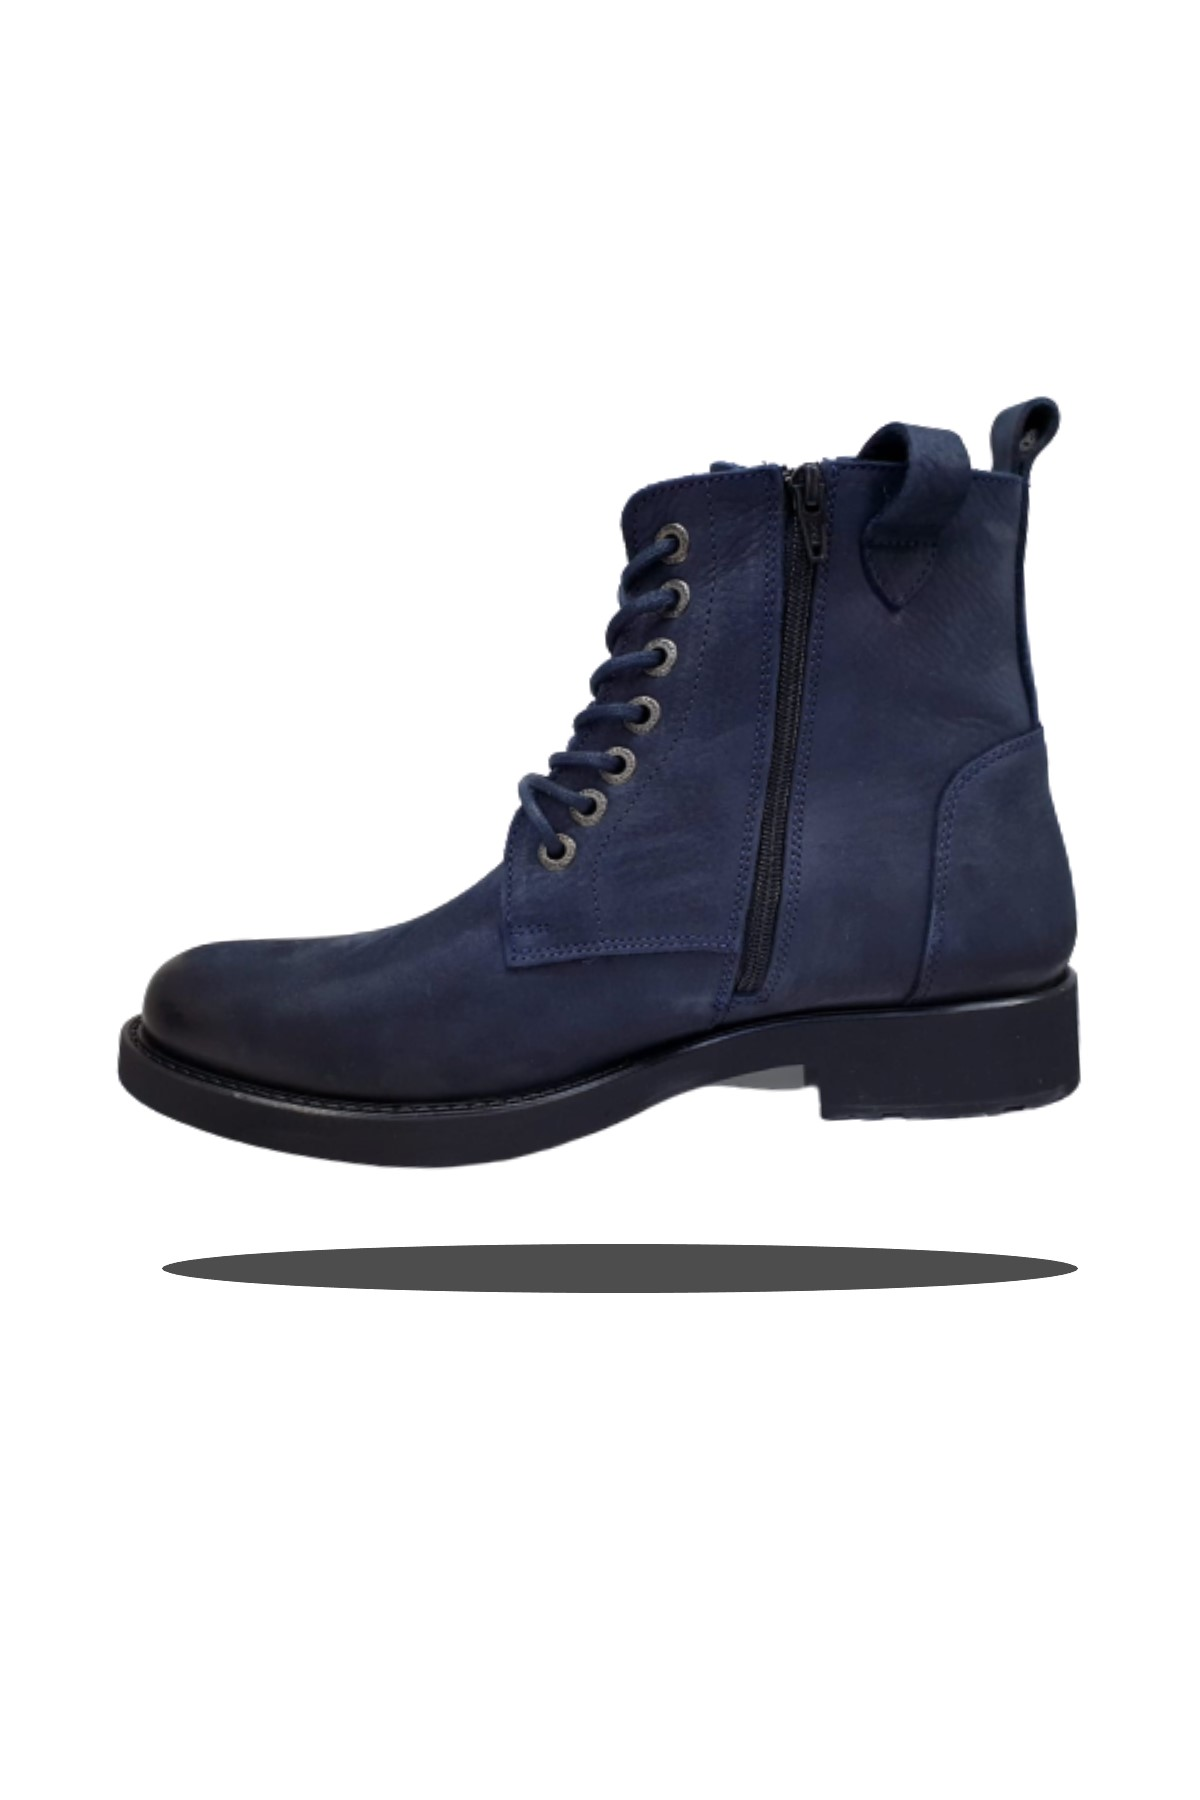 Hammer Jack Male Genuine Leather Boots 102 15200-M 1